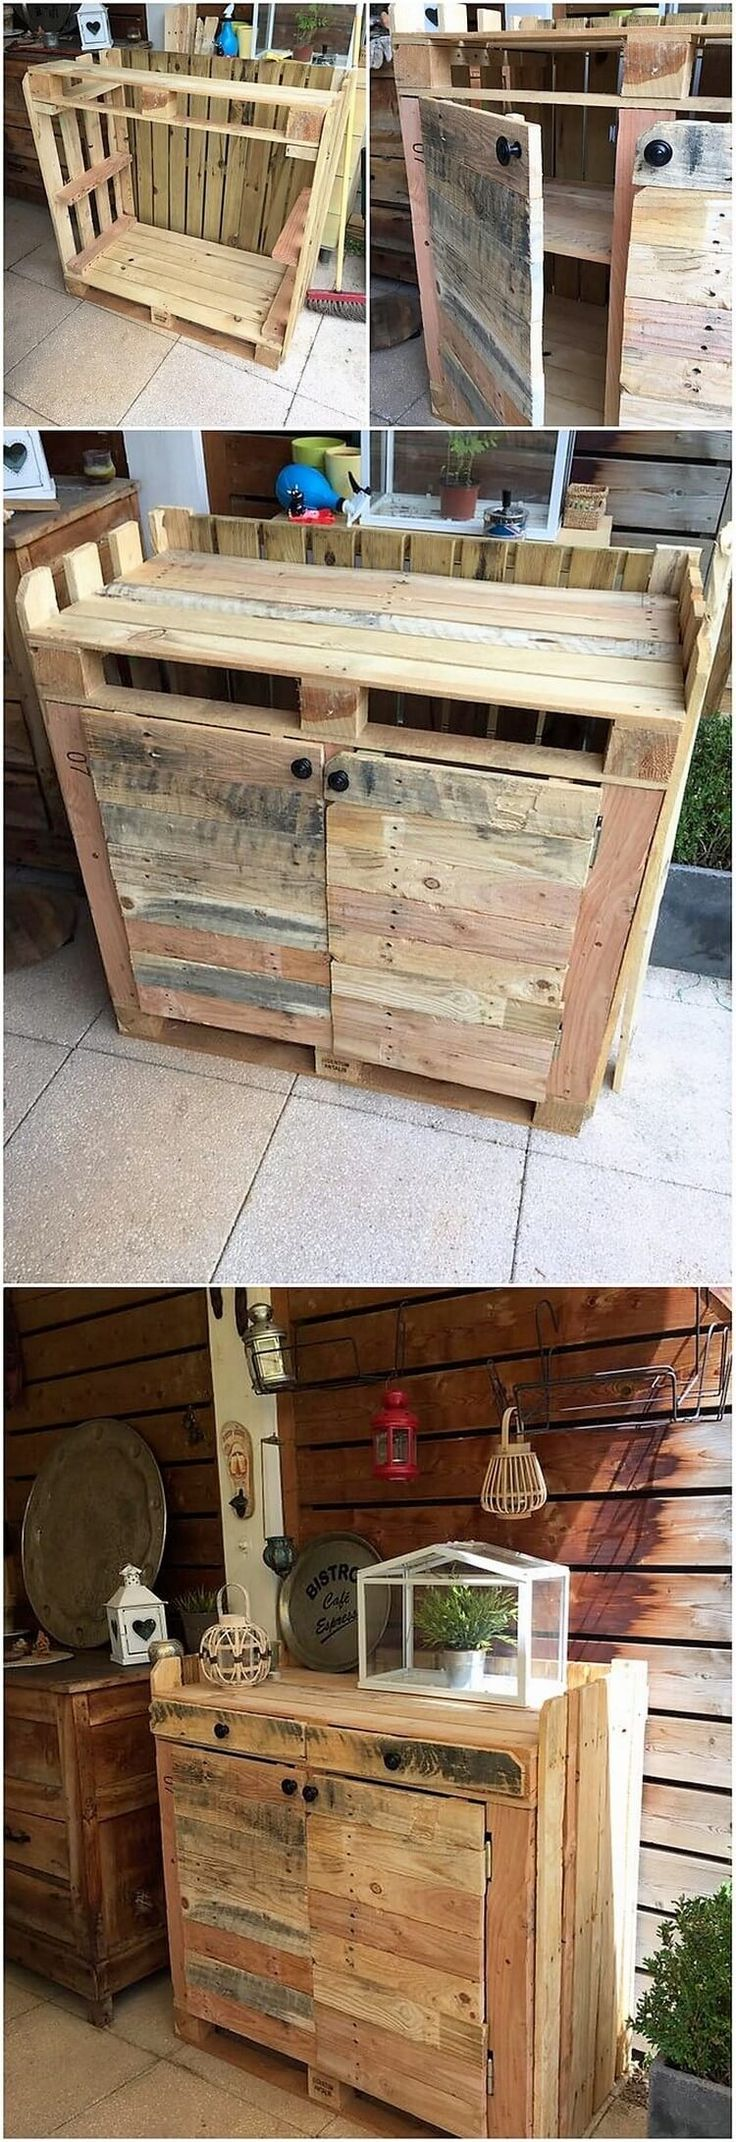 Classic DIY Wood Pallet Ideas for Your